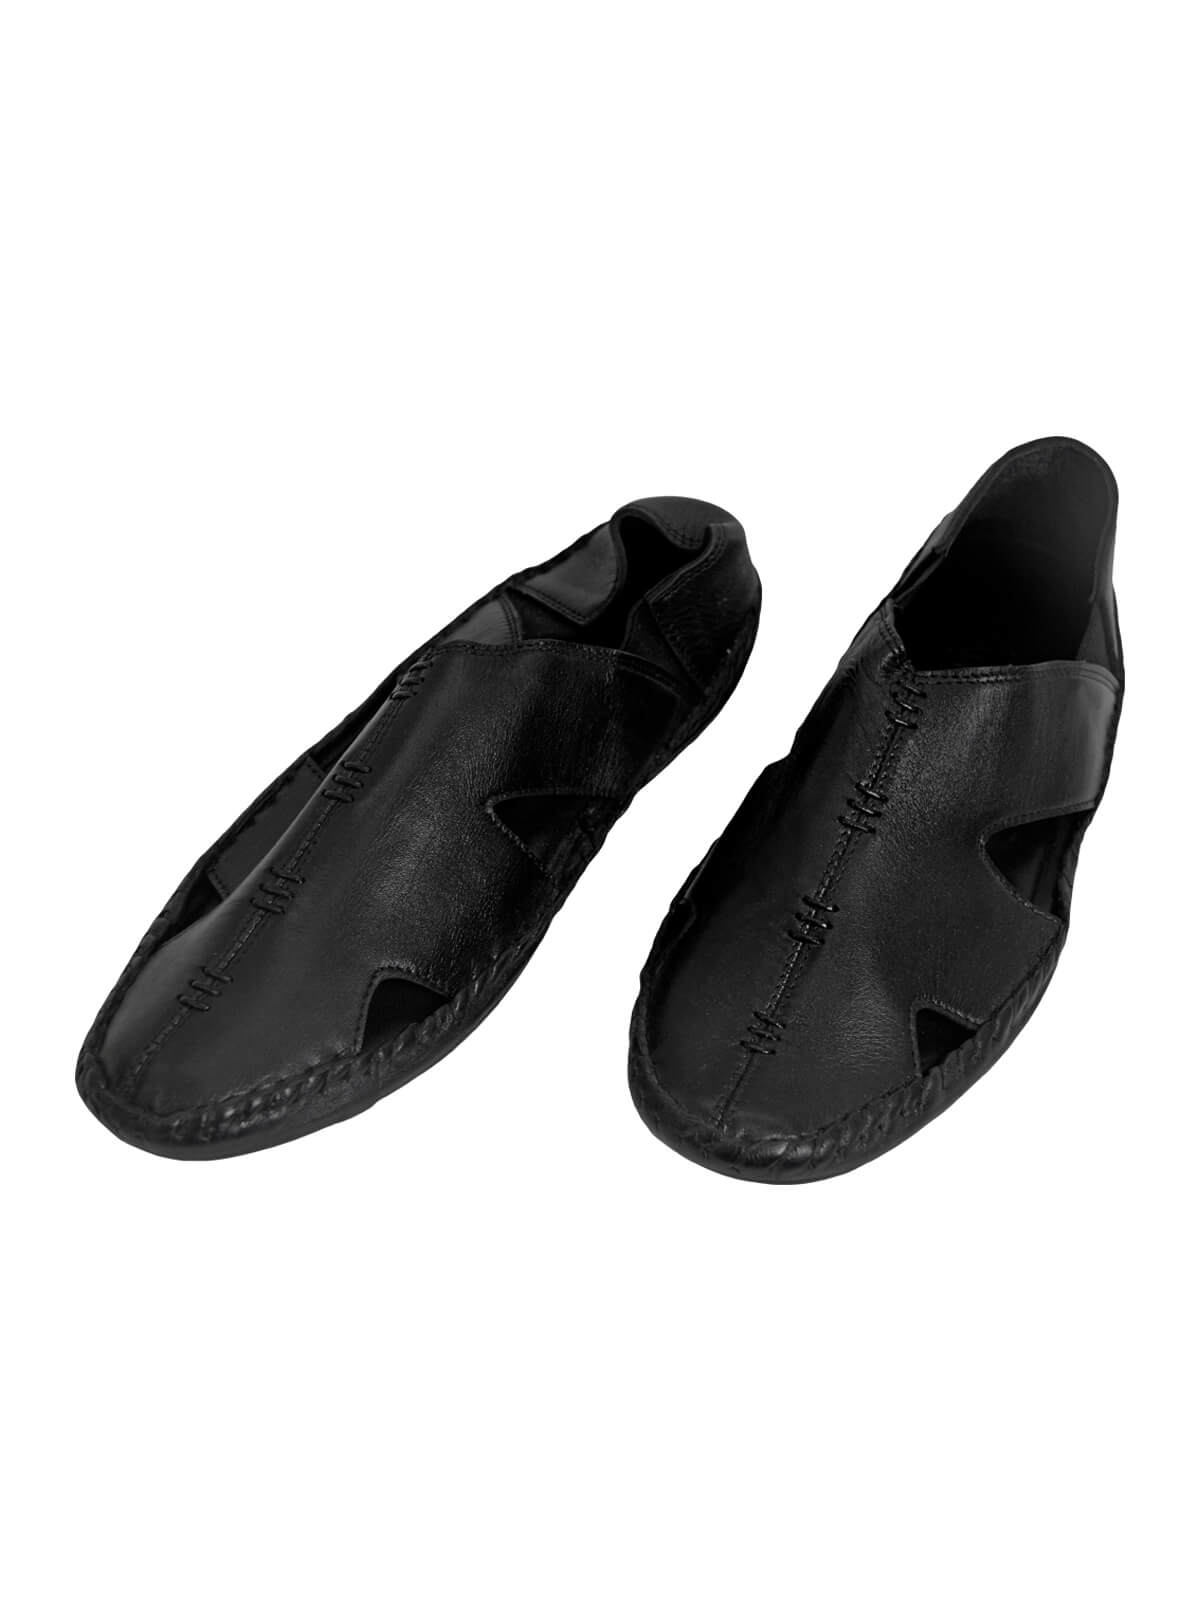 Black Cycle Shoe